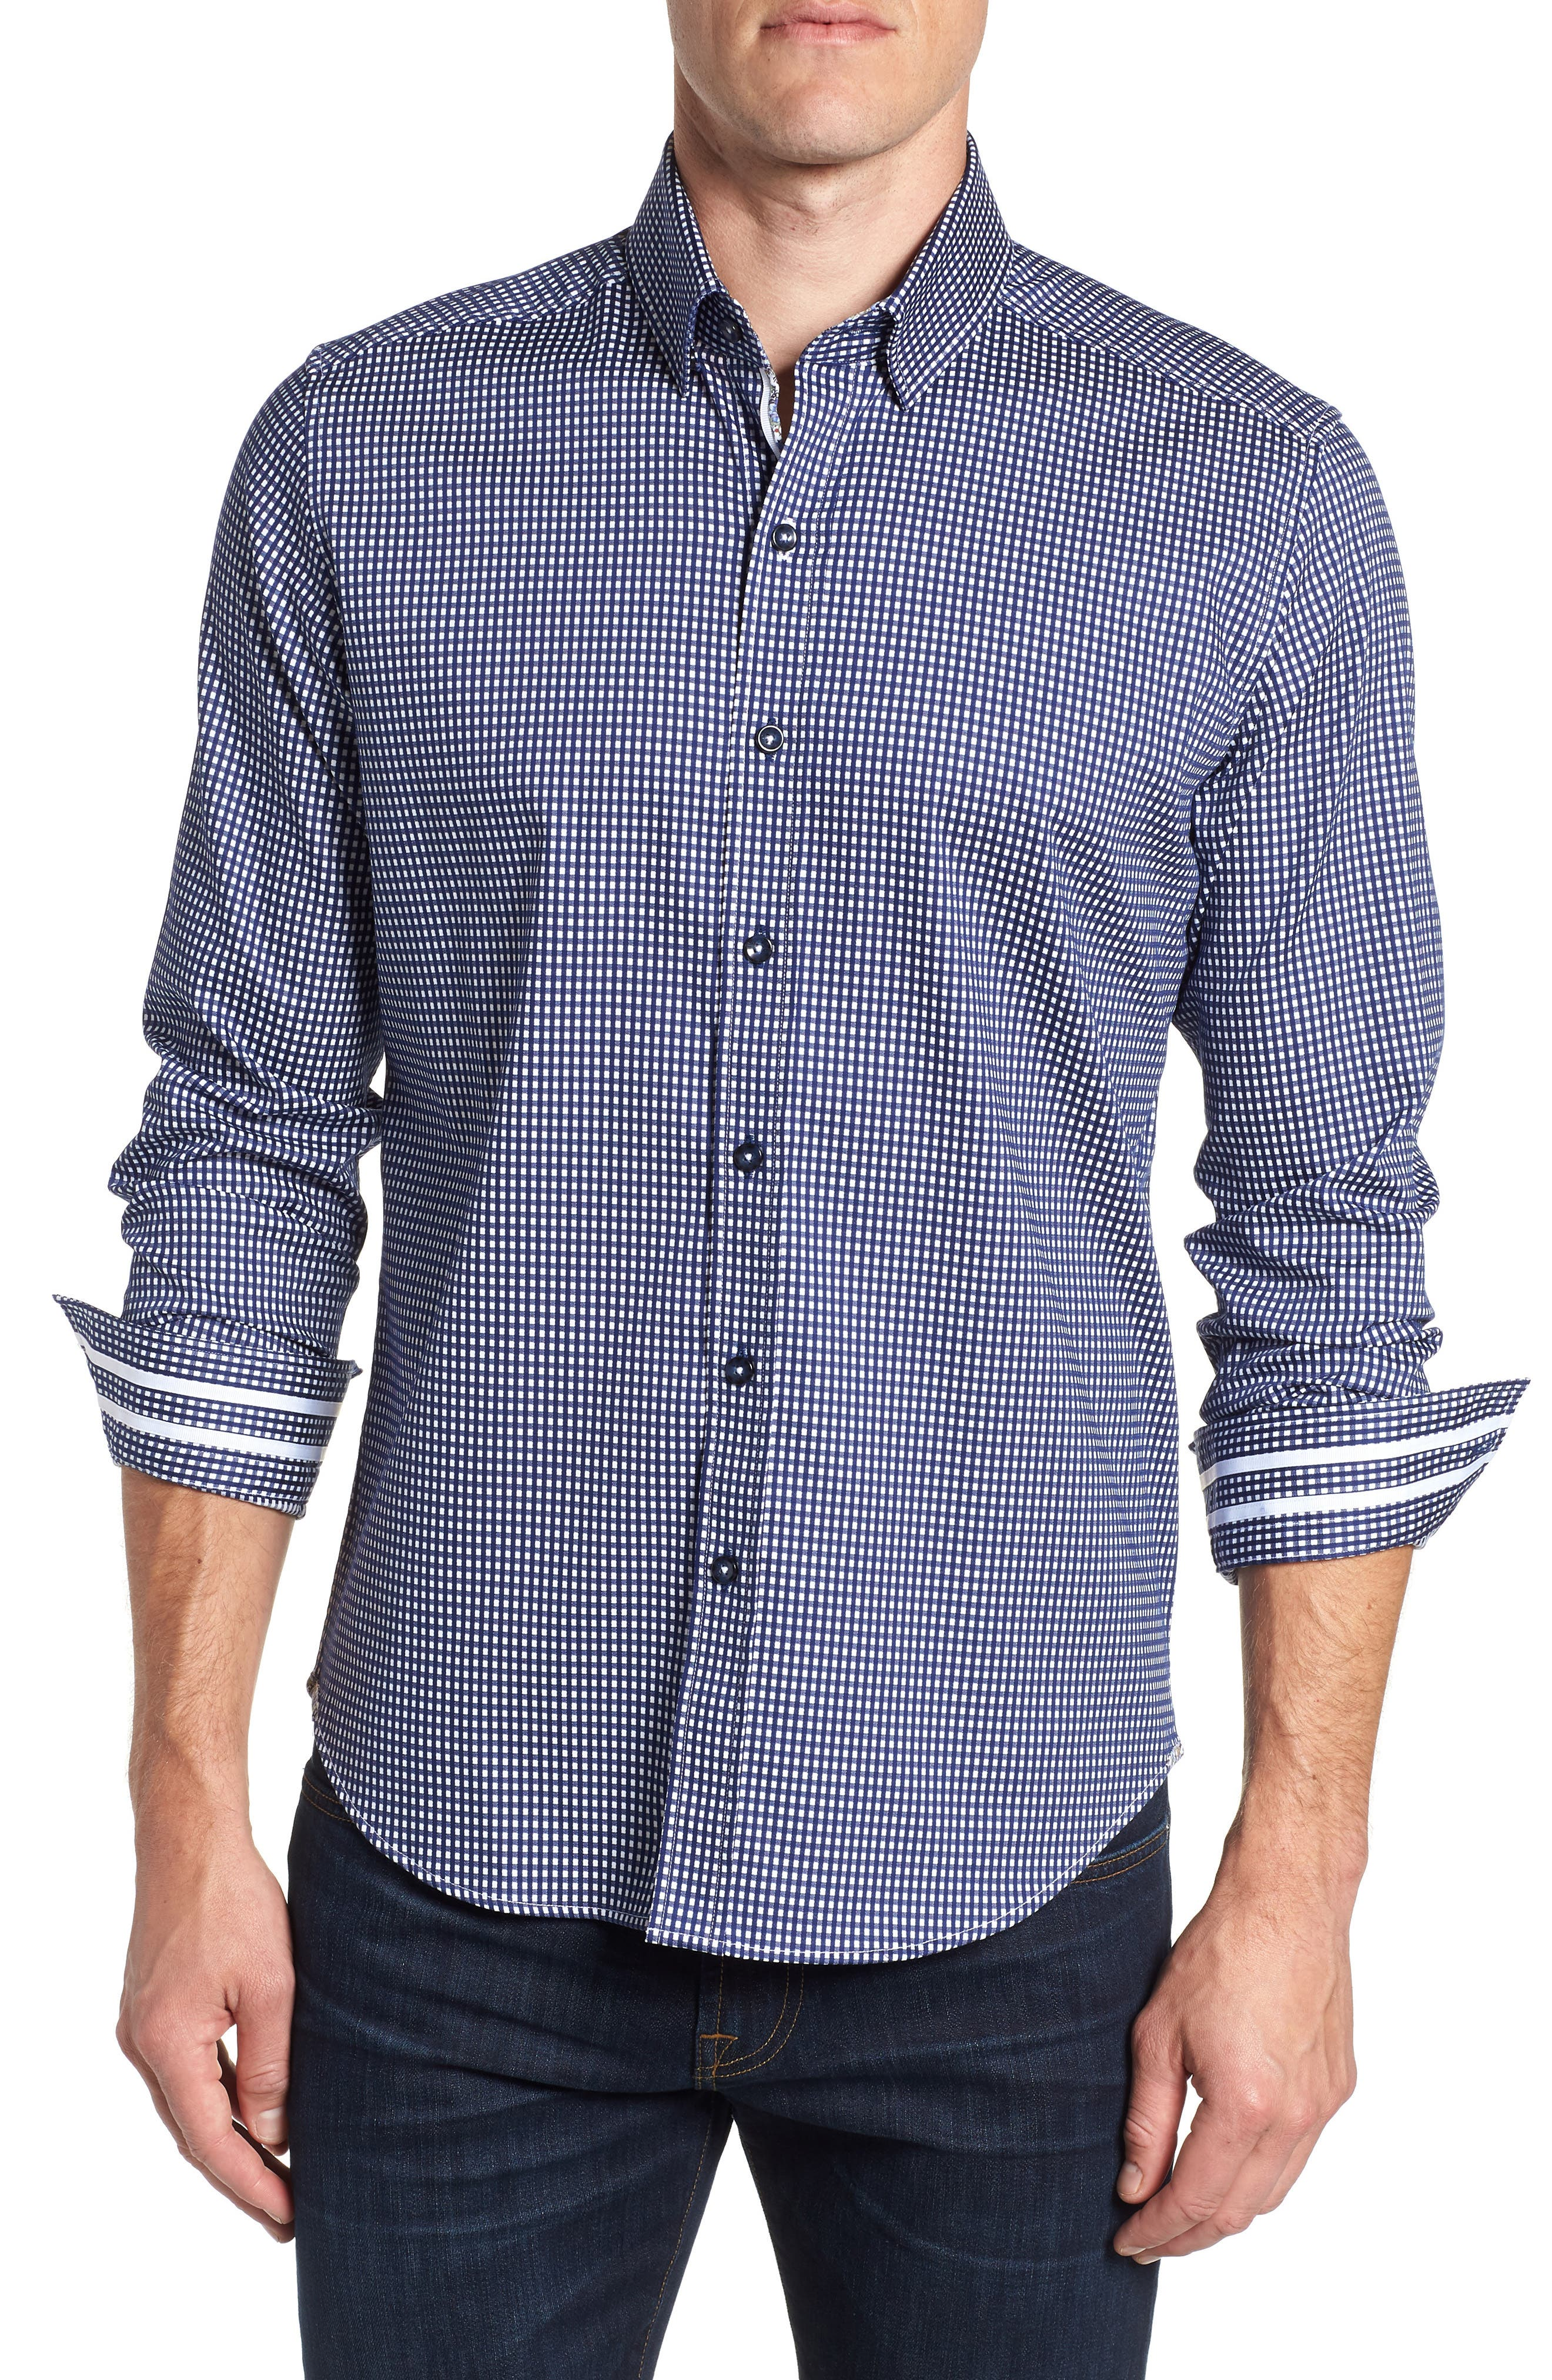 Charles Tailored Fit Sport Shirt,                         Main,                         color, BLUE